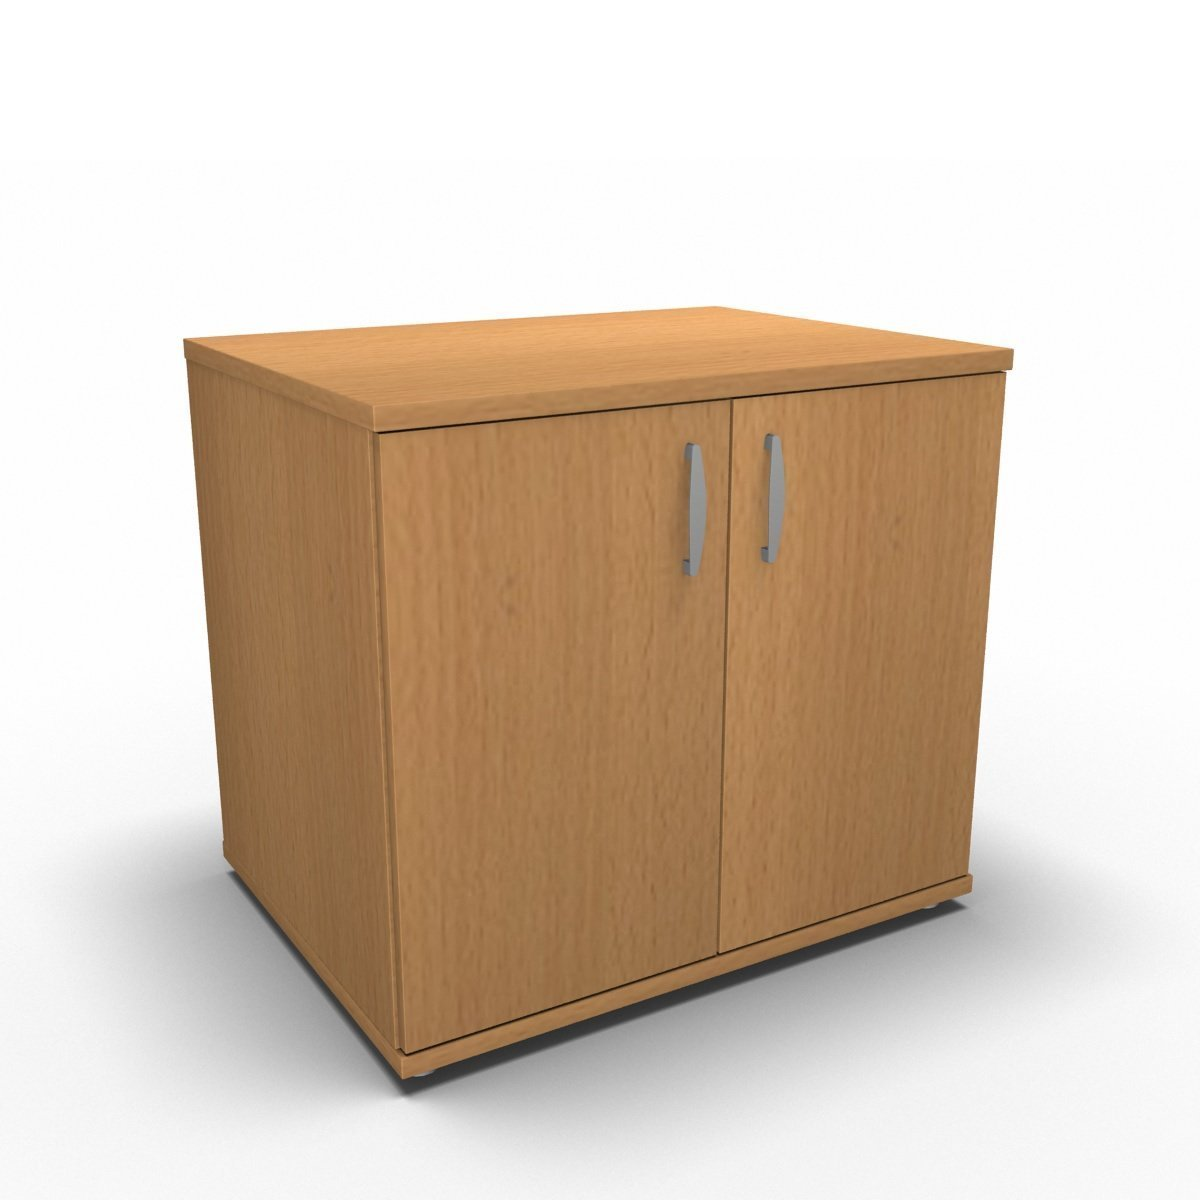 Cupboard 800 x 600 x 730mm / Beech Synergy Desk High Cupboard